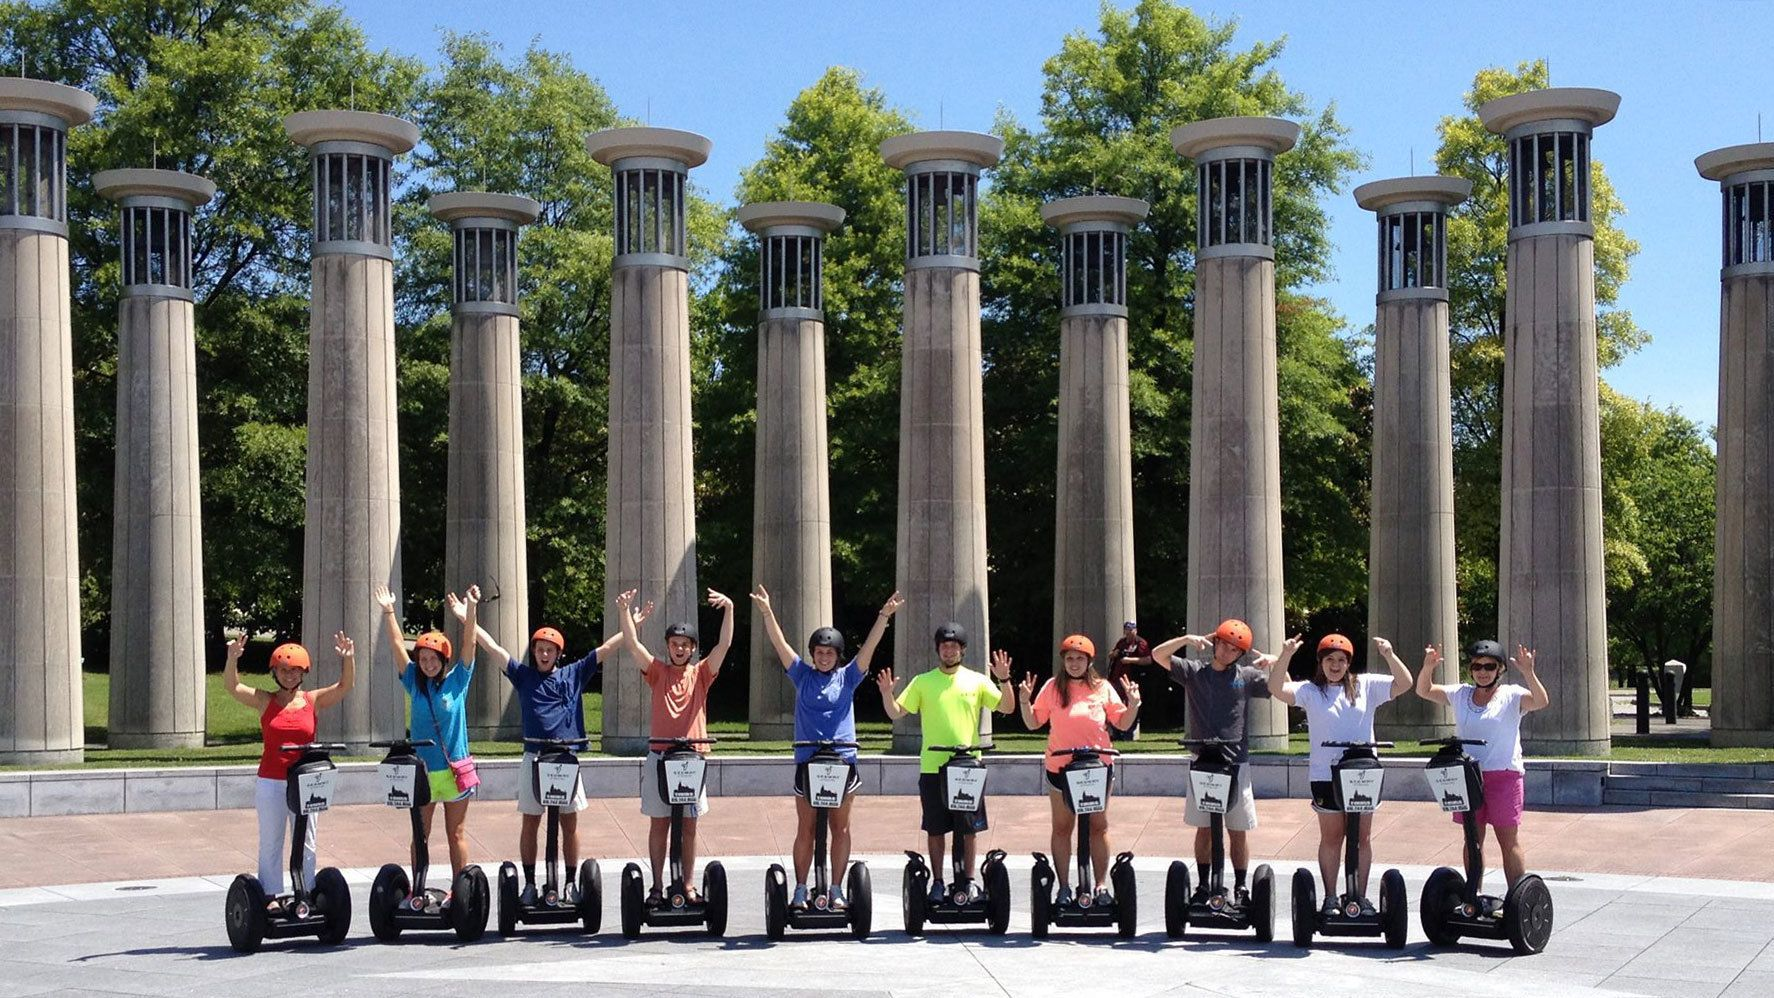 Large segway group in front of columns in park in Nashville